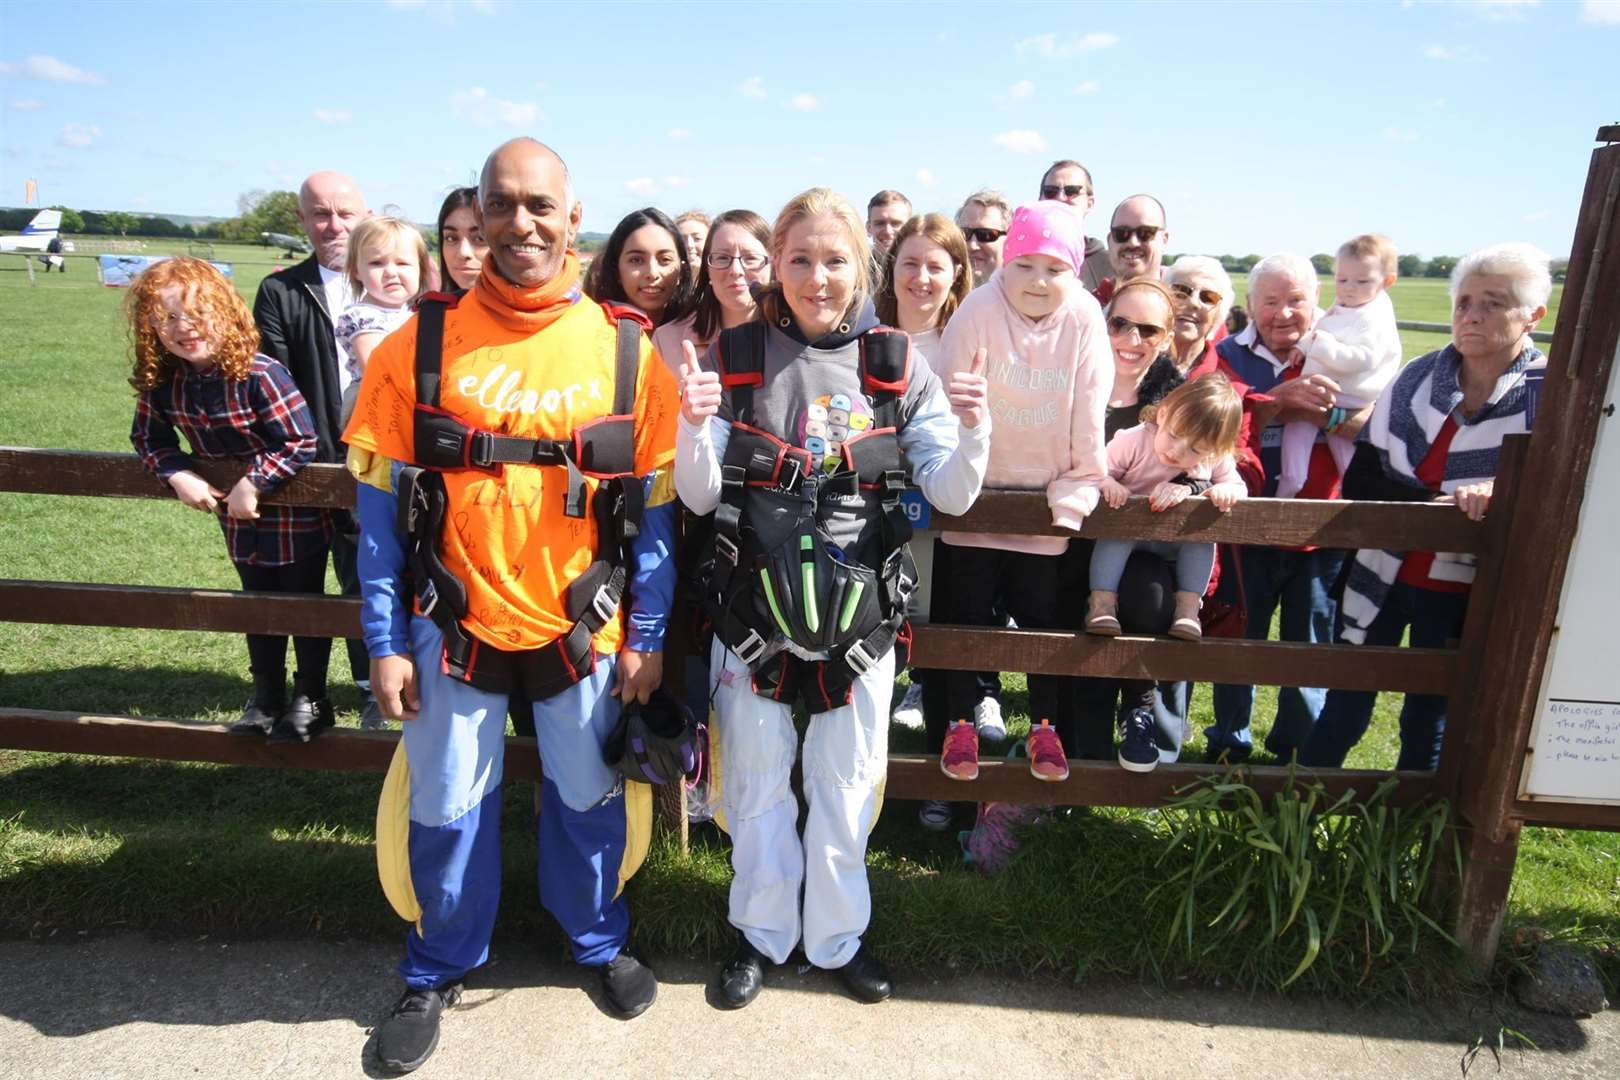 Sian was joined by her family and friends for the jump (10216445)